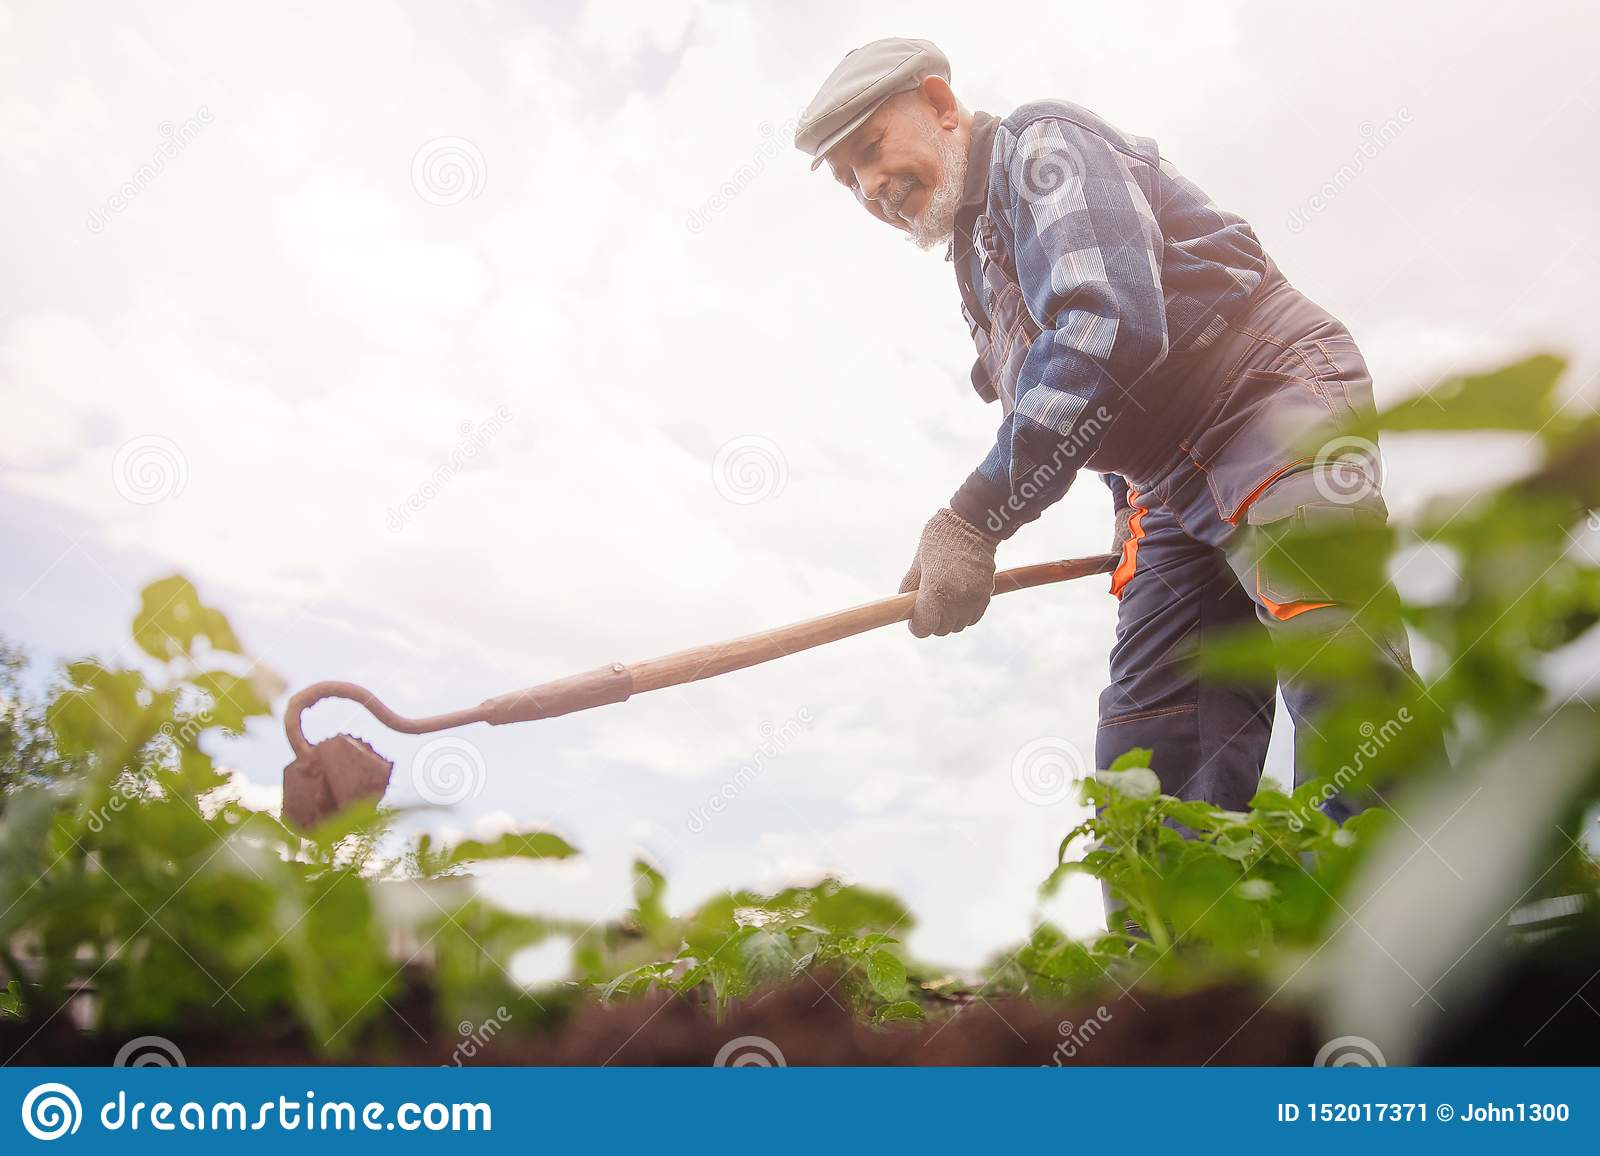 Removing weeds from soil of potatoes, Senior elderly man wielding hoe in vegetable garden